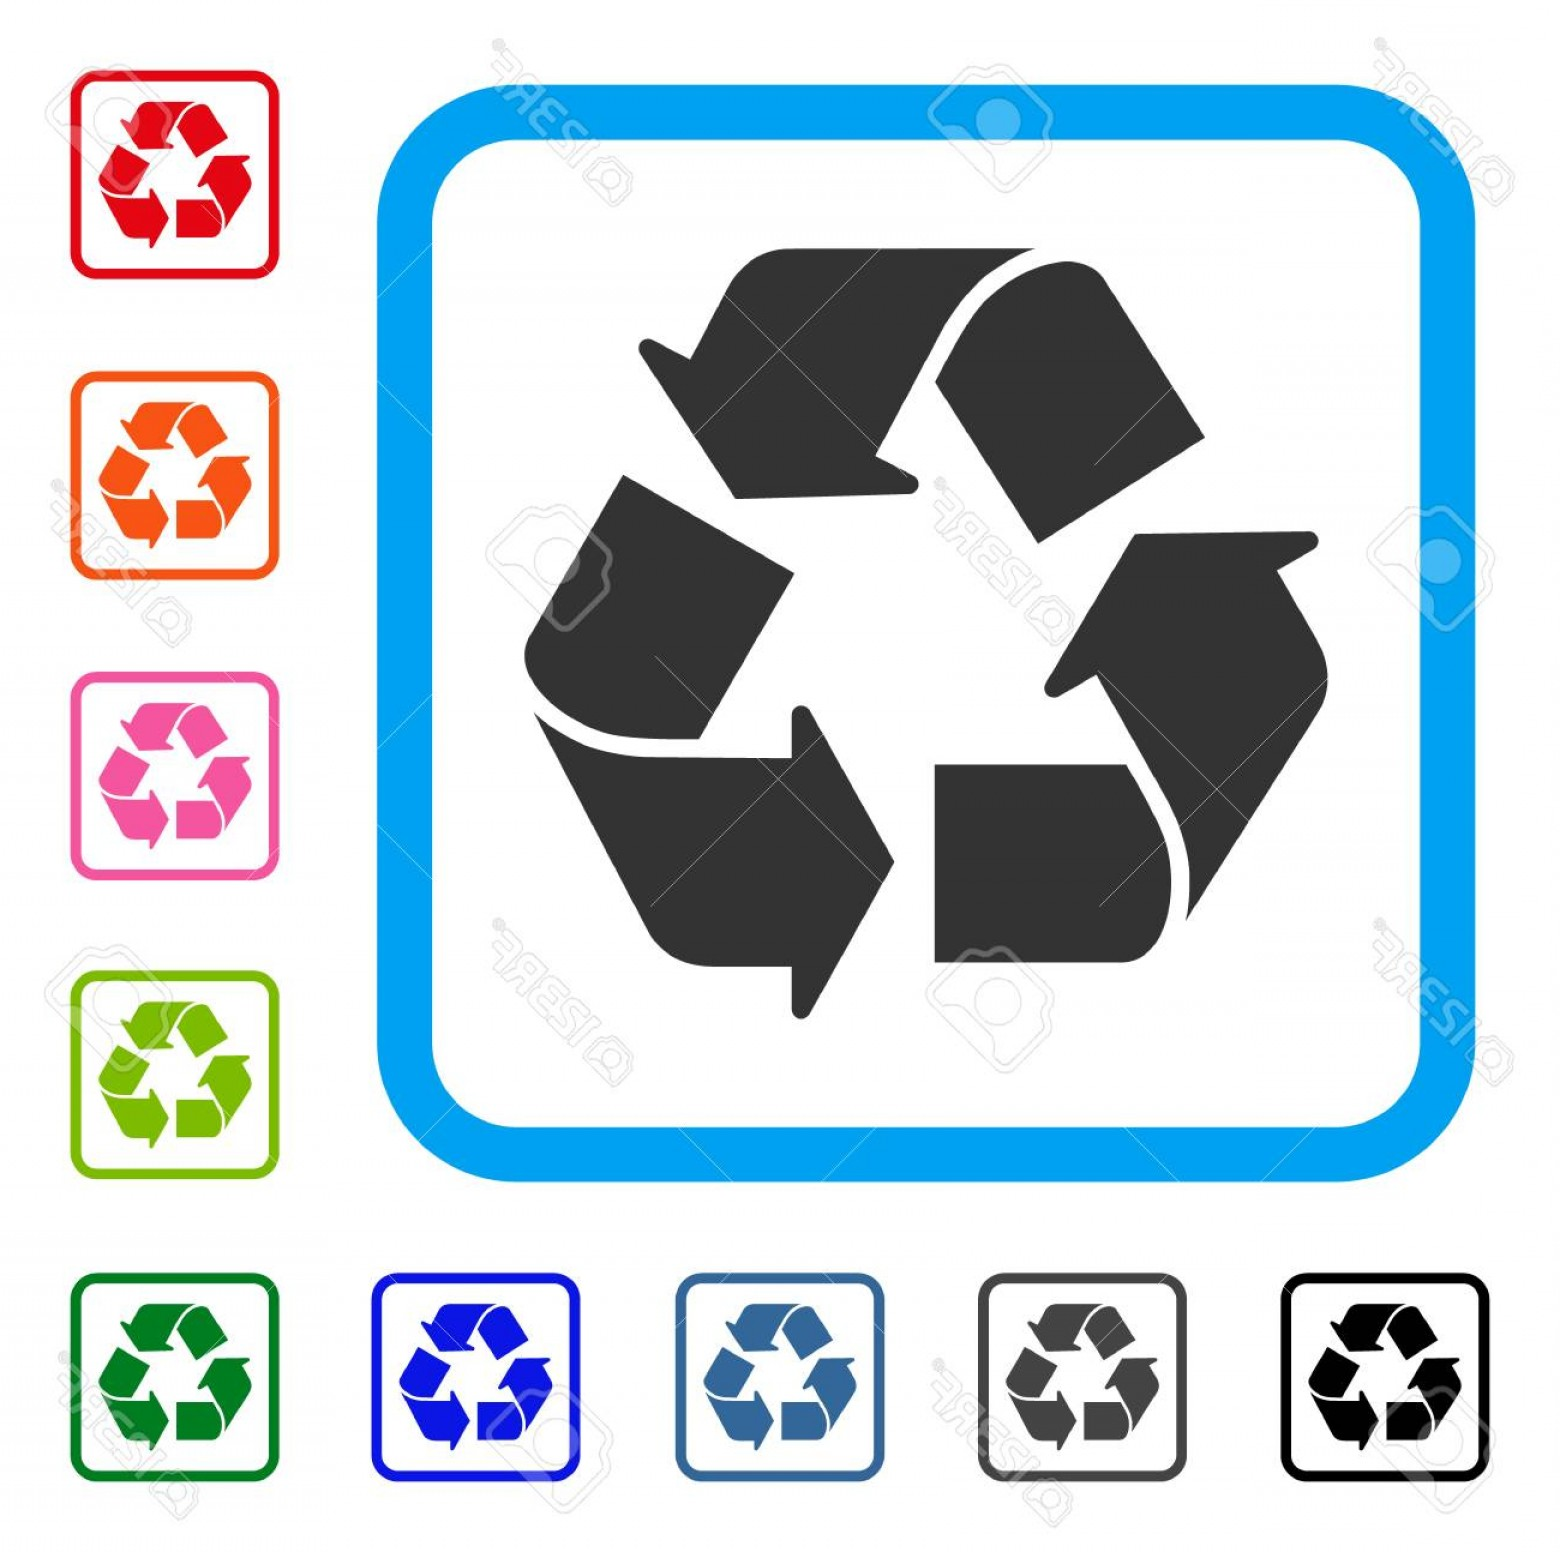 Recycle Icon Vector Red: Photostock Vector Recycle Icon Flat Grey Iconic Symbol In A Light Blue Rounded Squared Frame Black Gray Green Blue Red